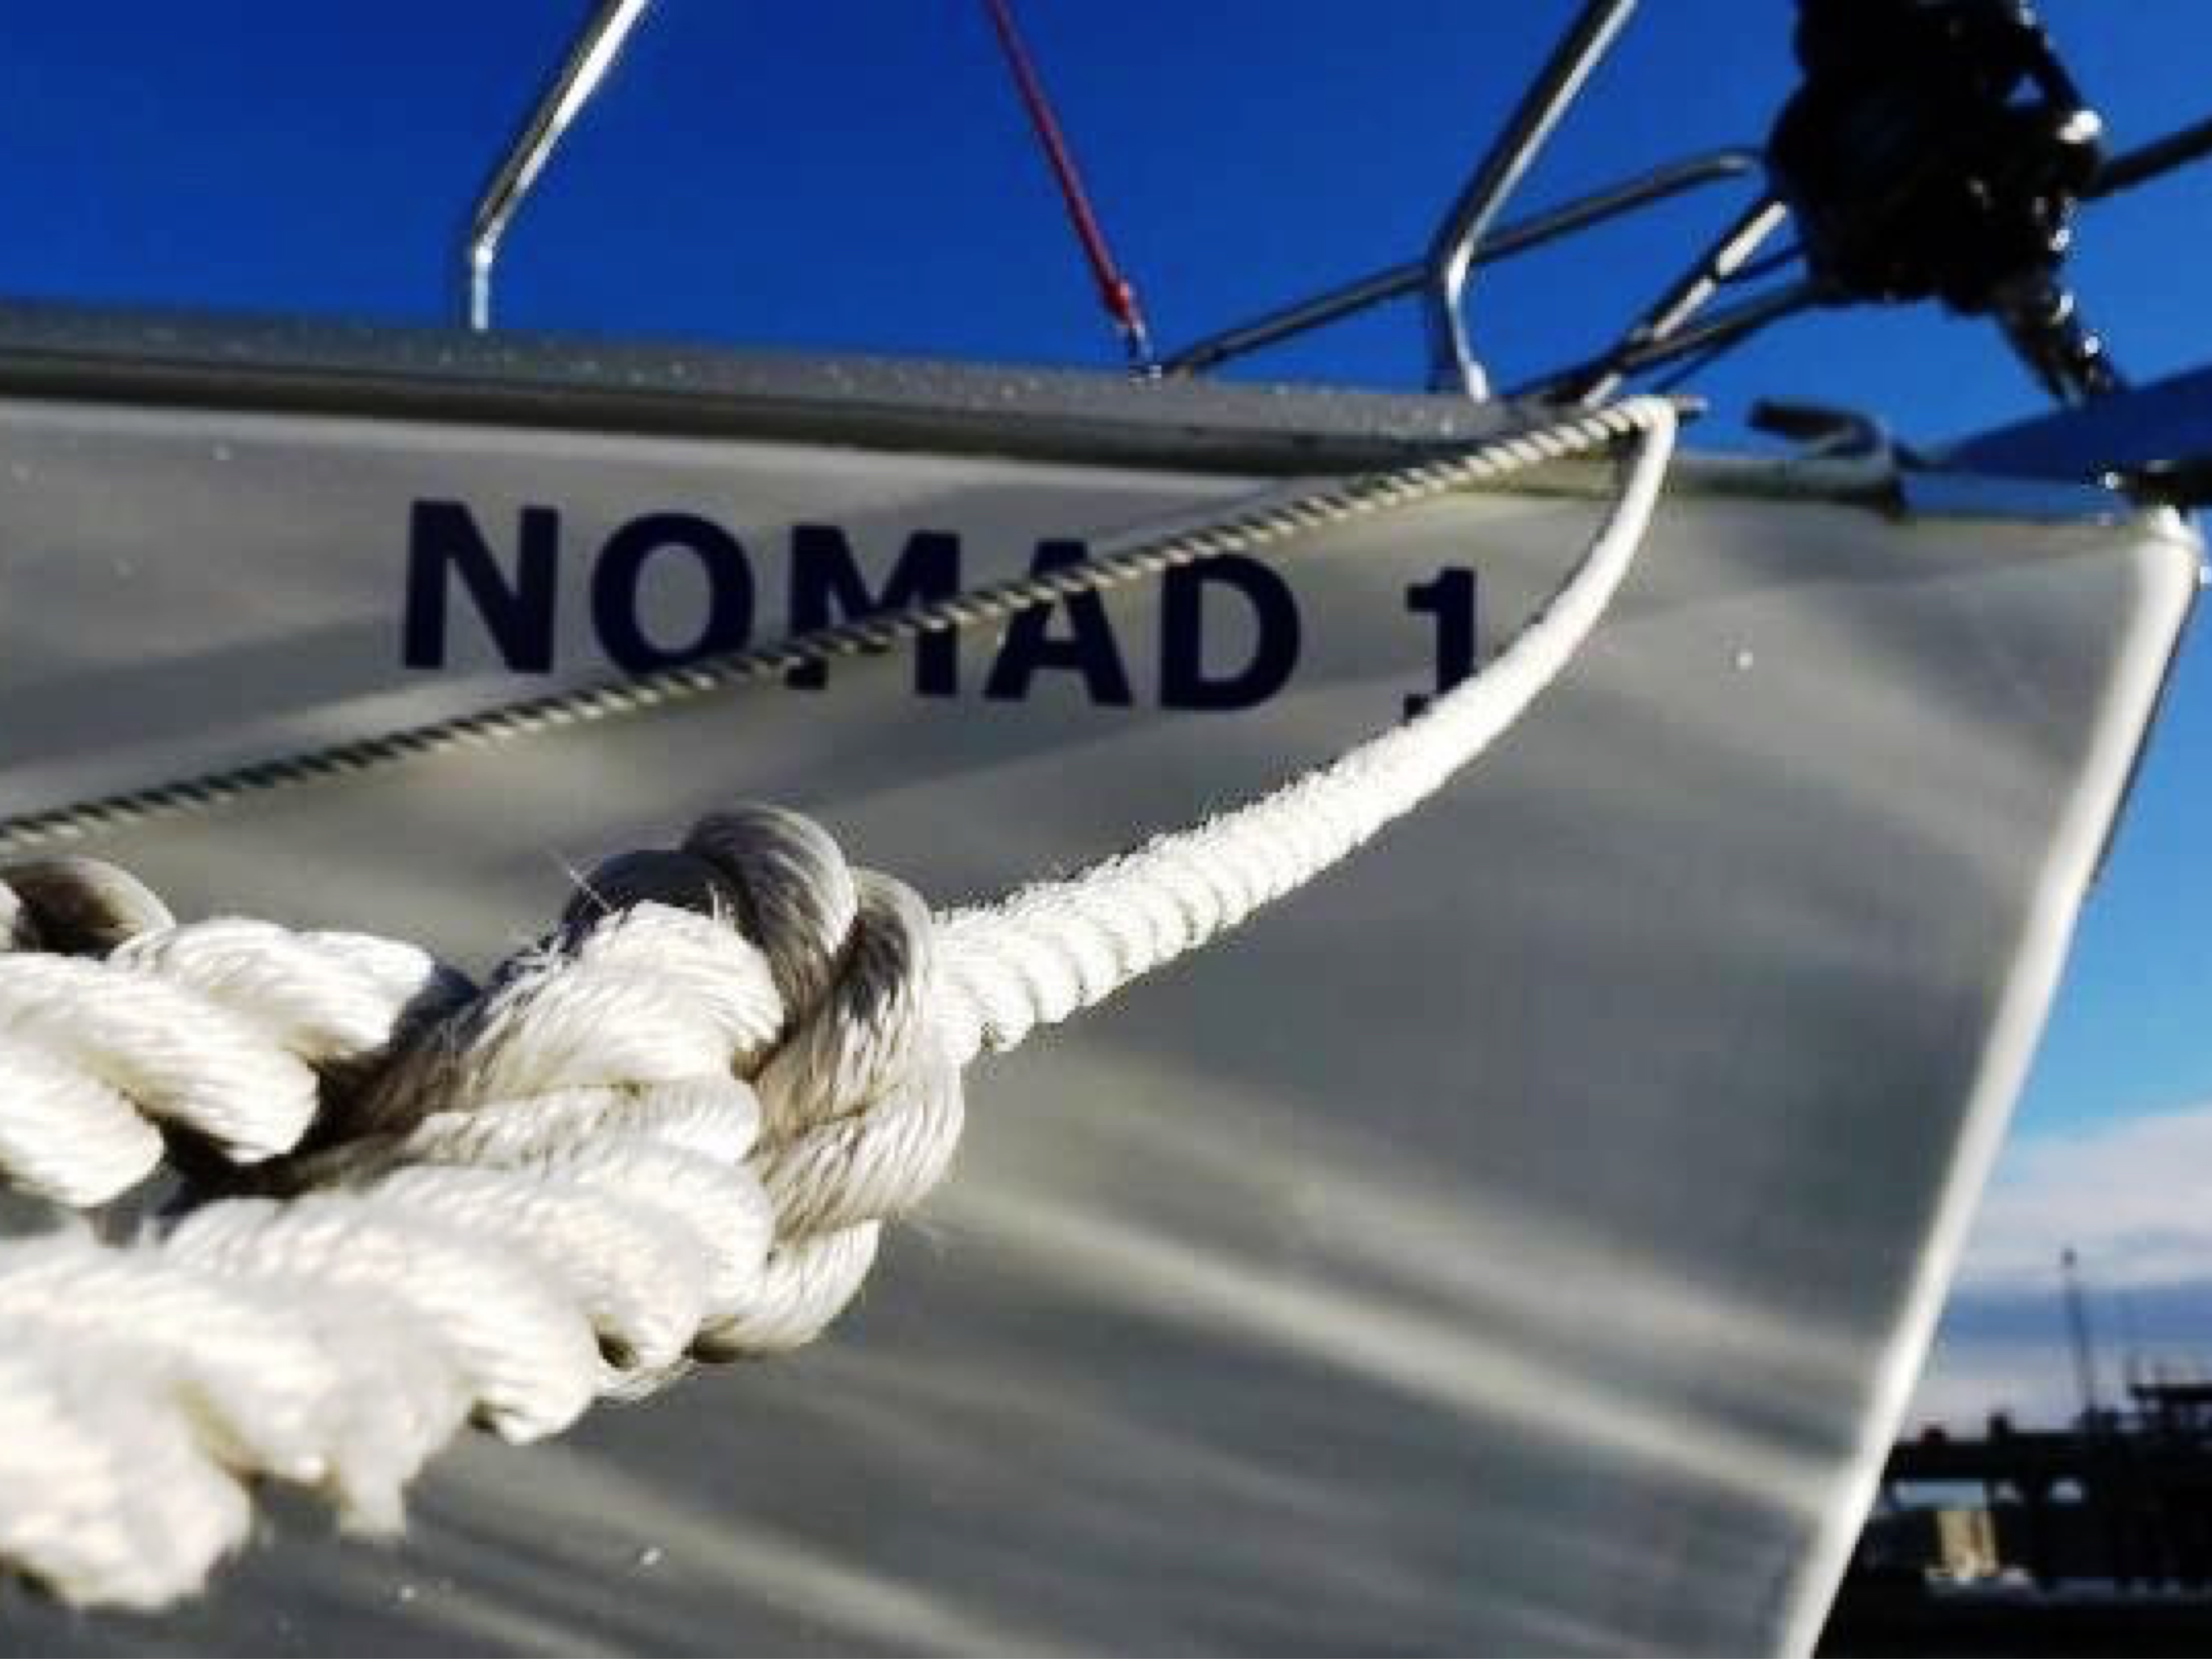 Image of the bow of Nomad 1 sailing yacht showing mooring line